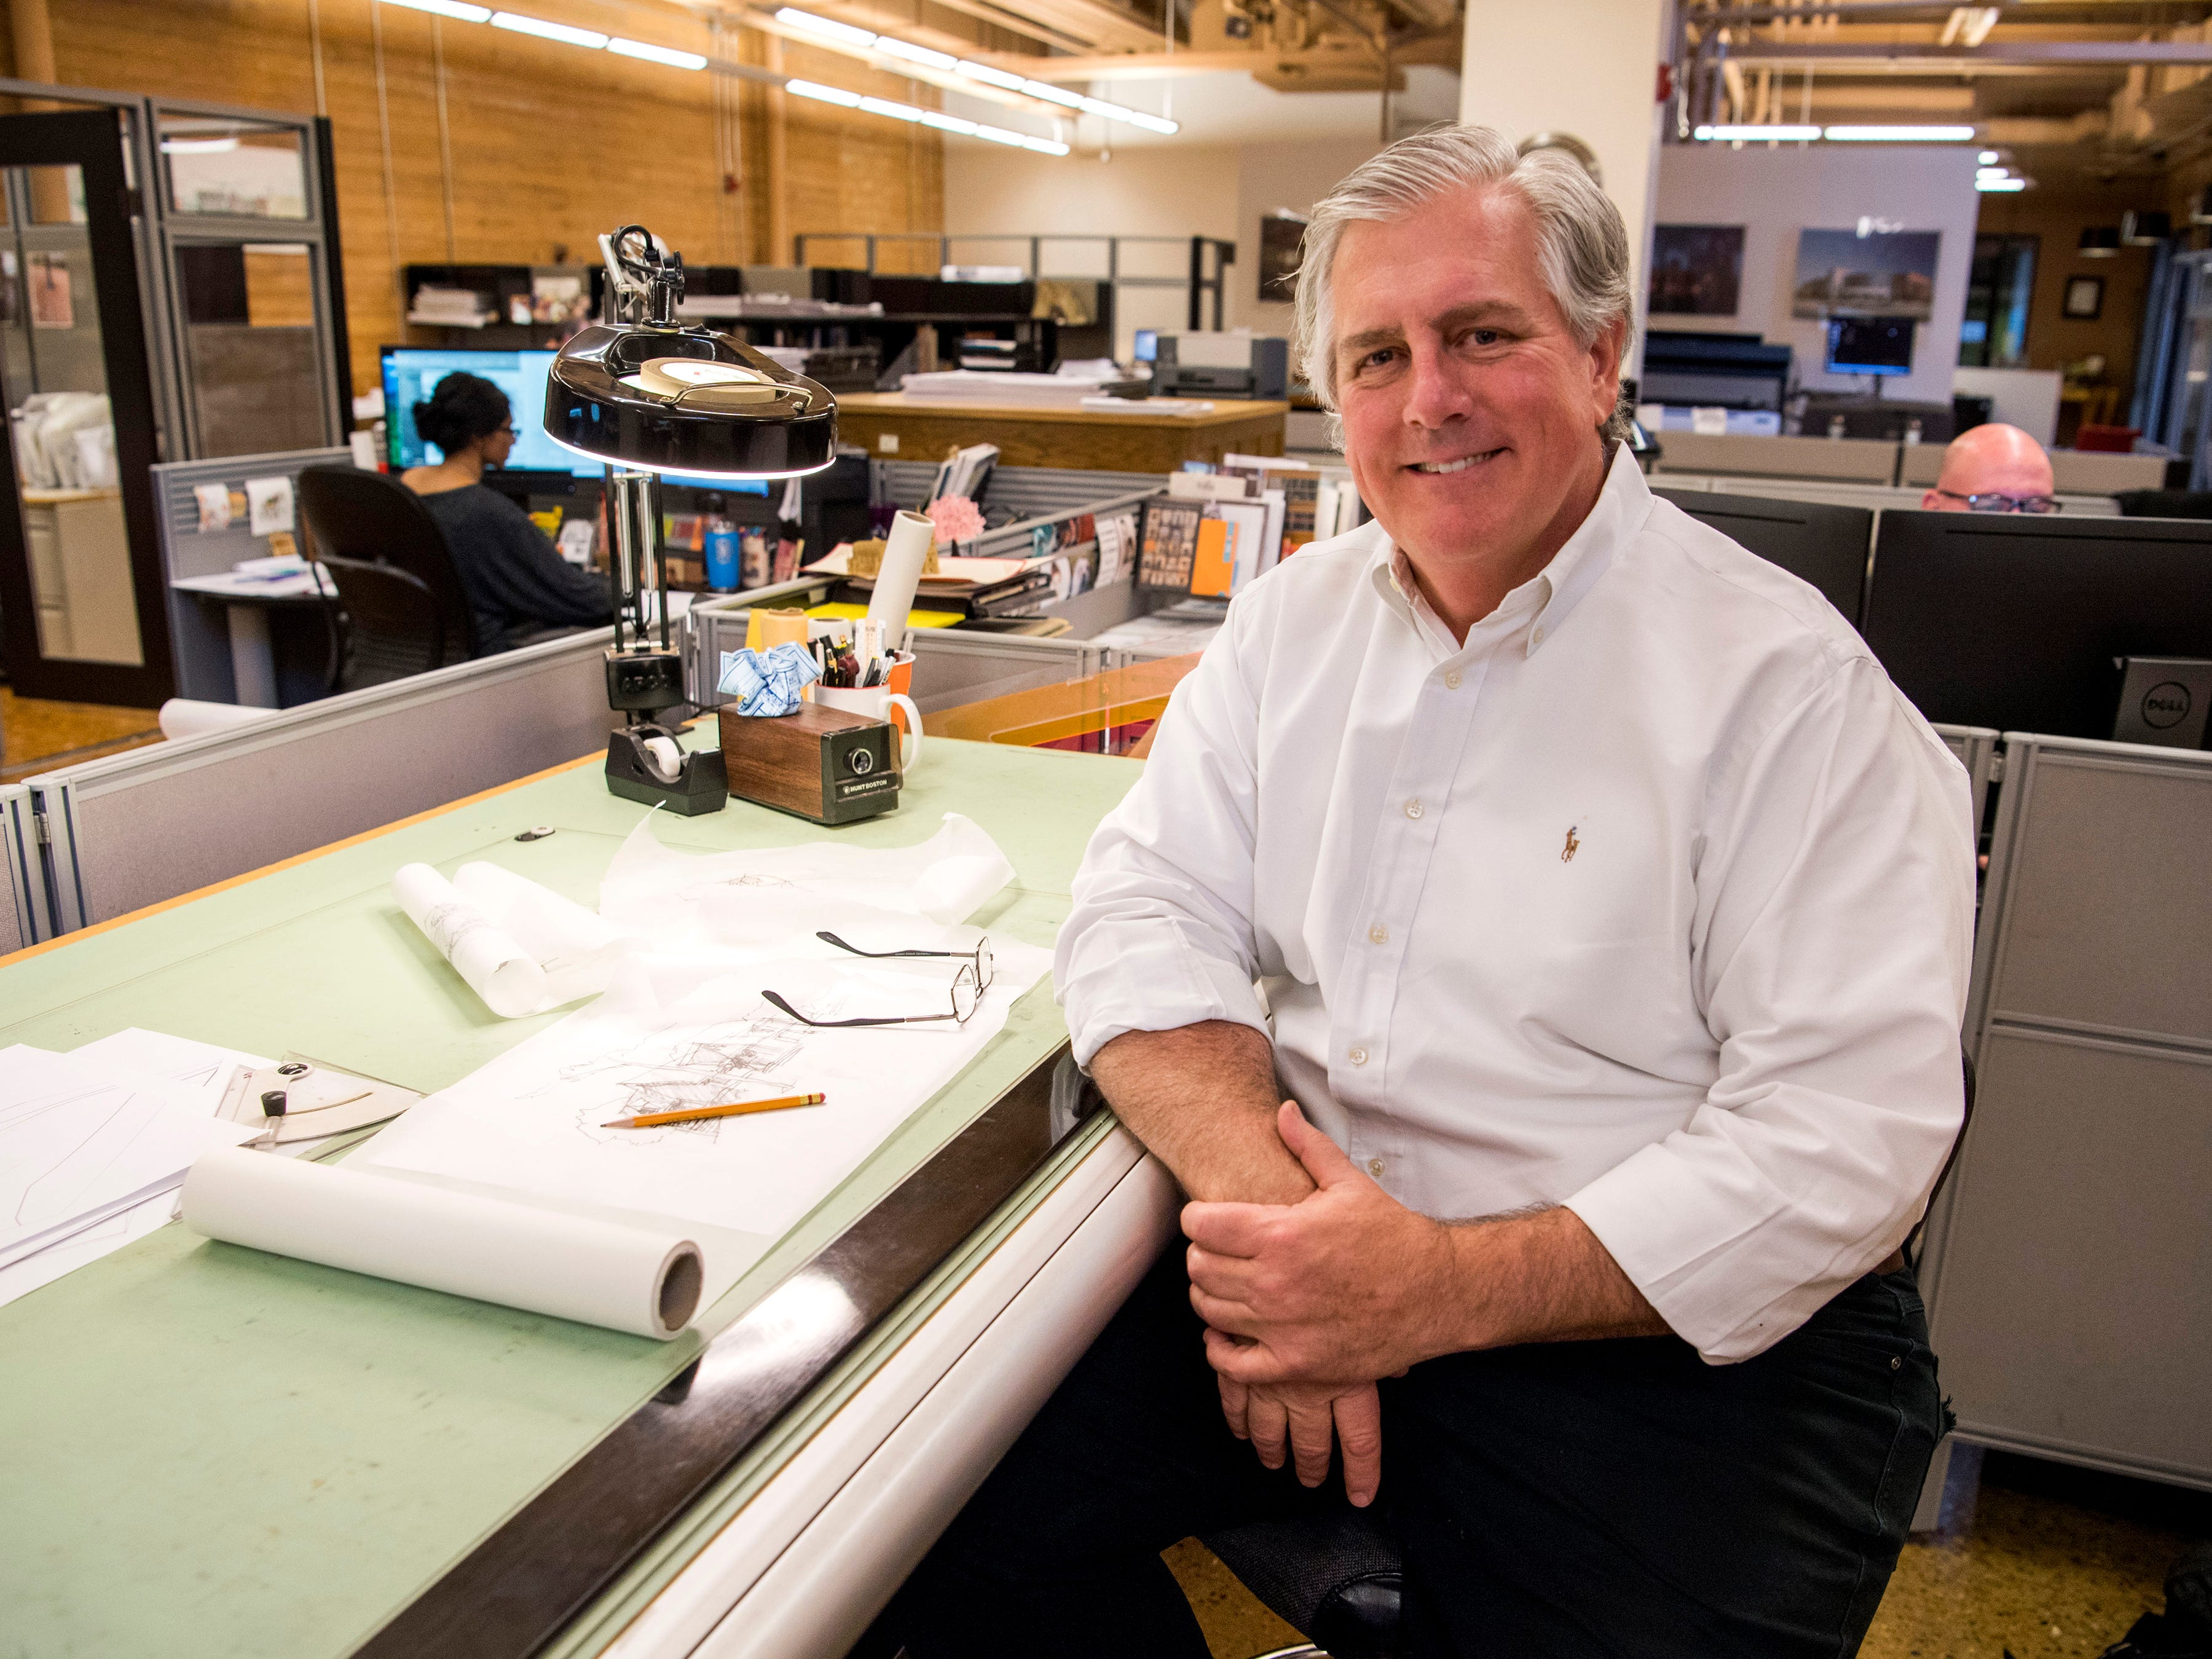 Johnson Architecture's Daryl Johnson works at his drawing board at the firm's office at Cherokee Mills in Knoxville on Tuesday, April 2, 2019.